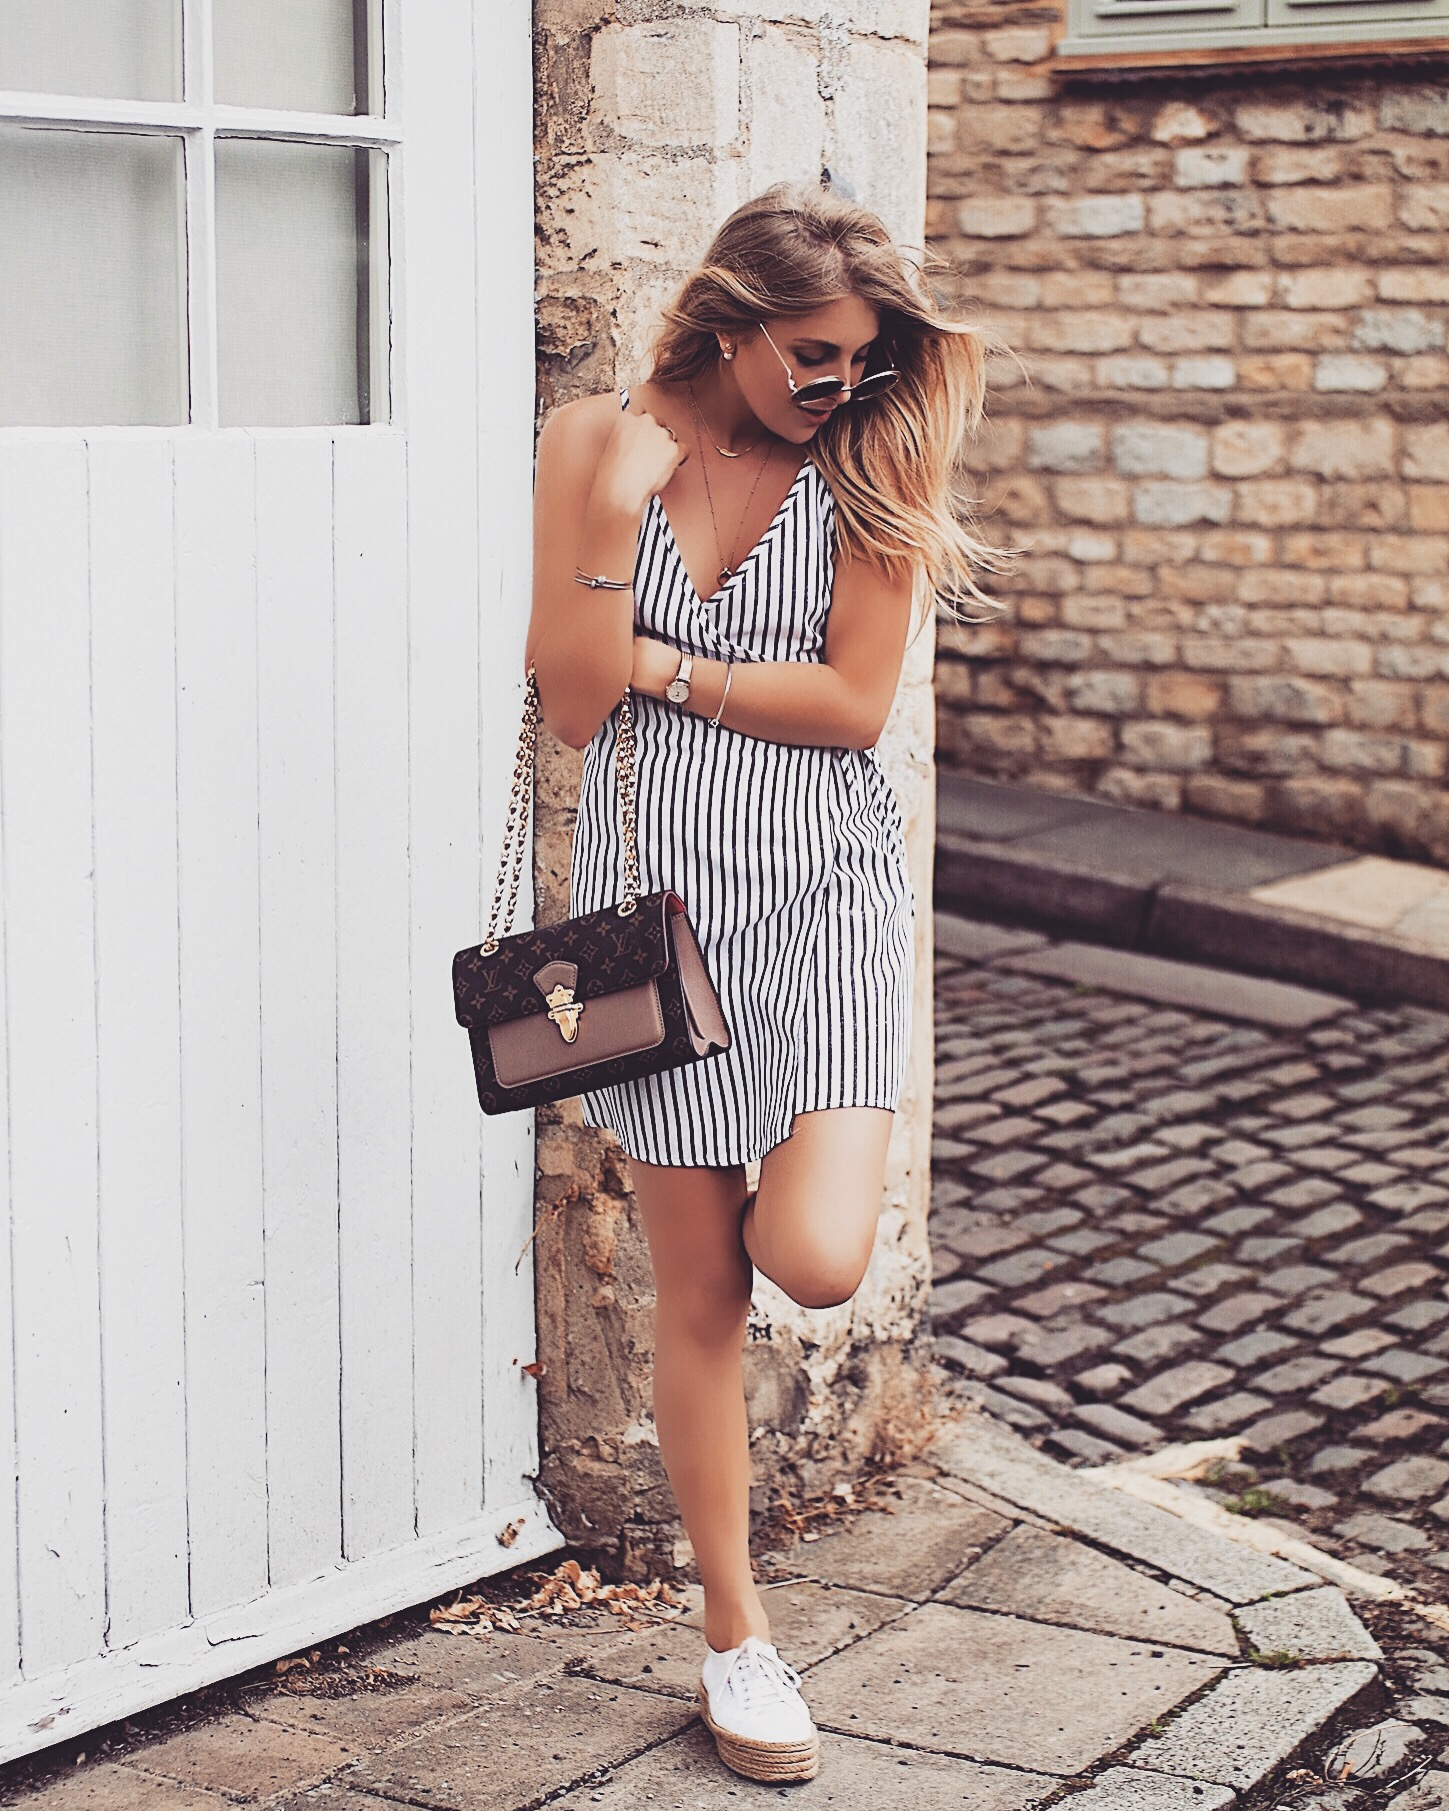 The Wrap Dress - Fashion Blogger Street Style